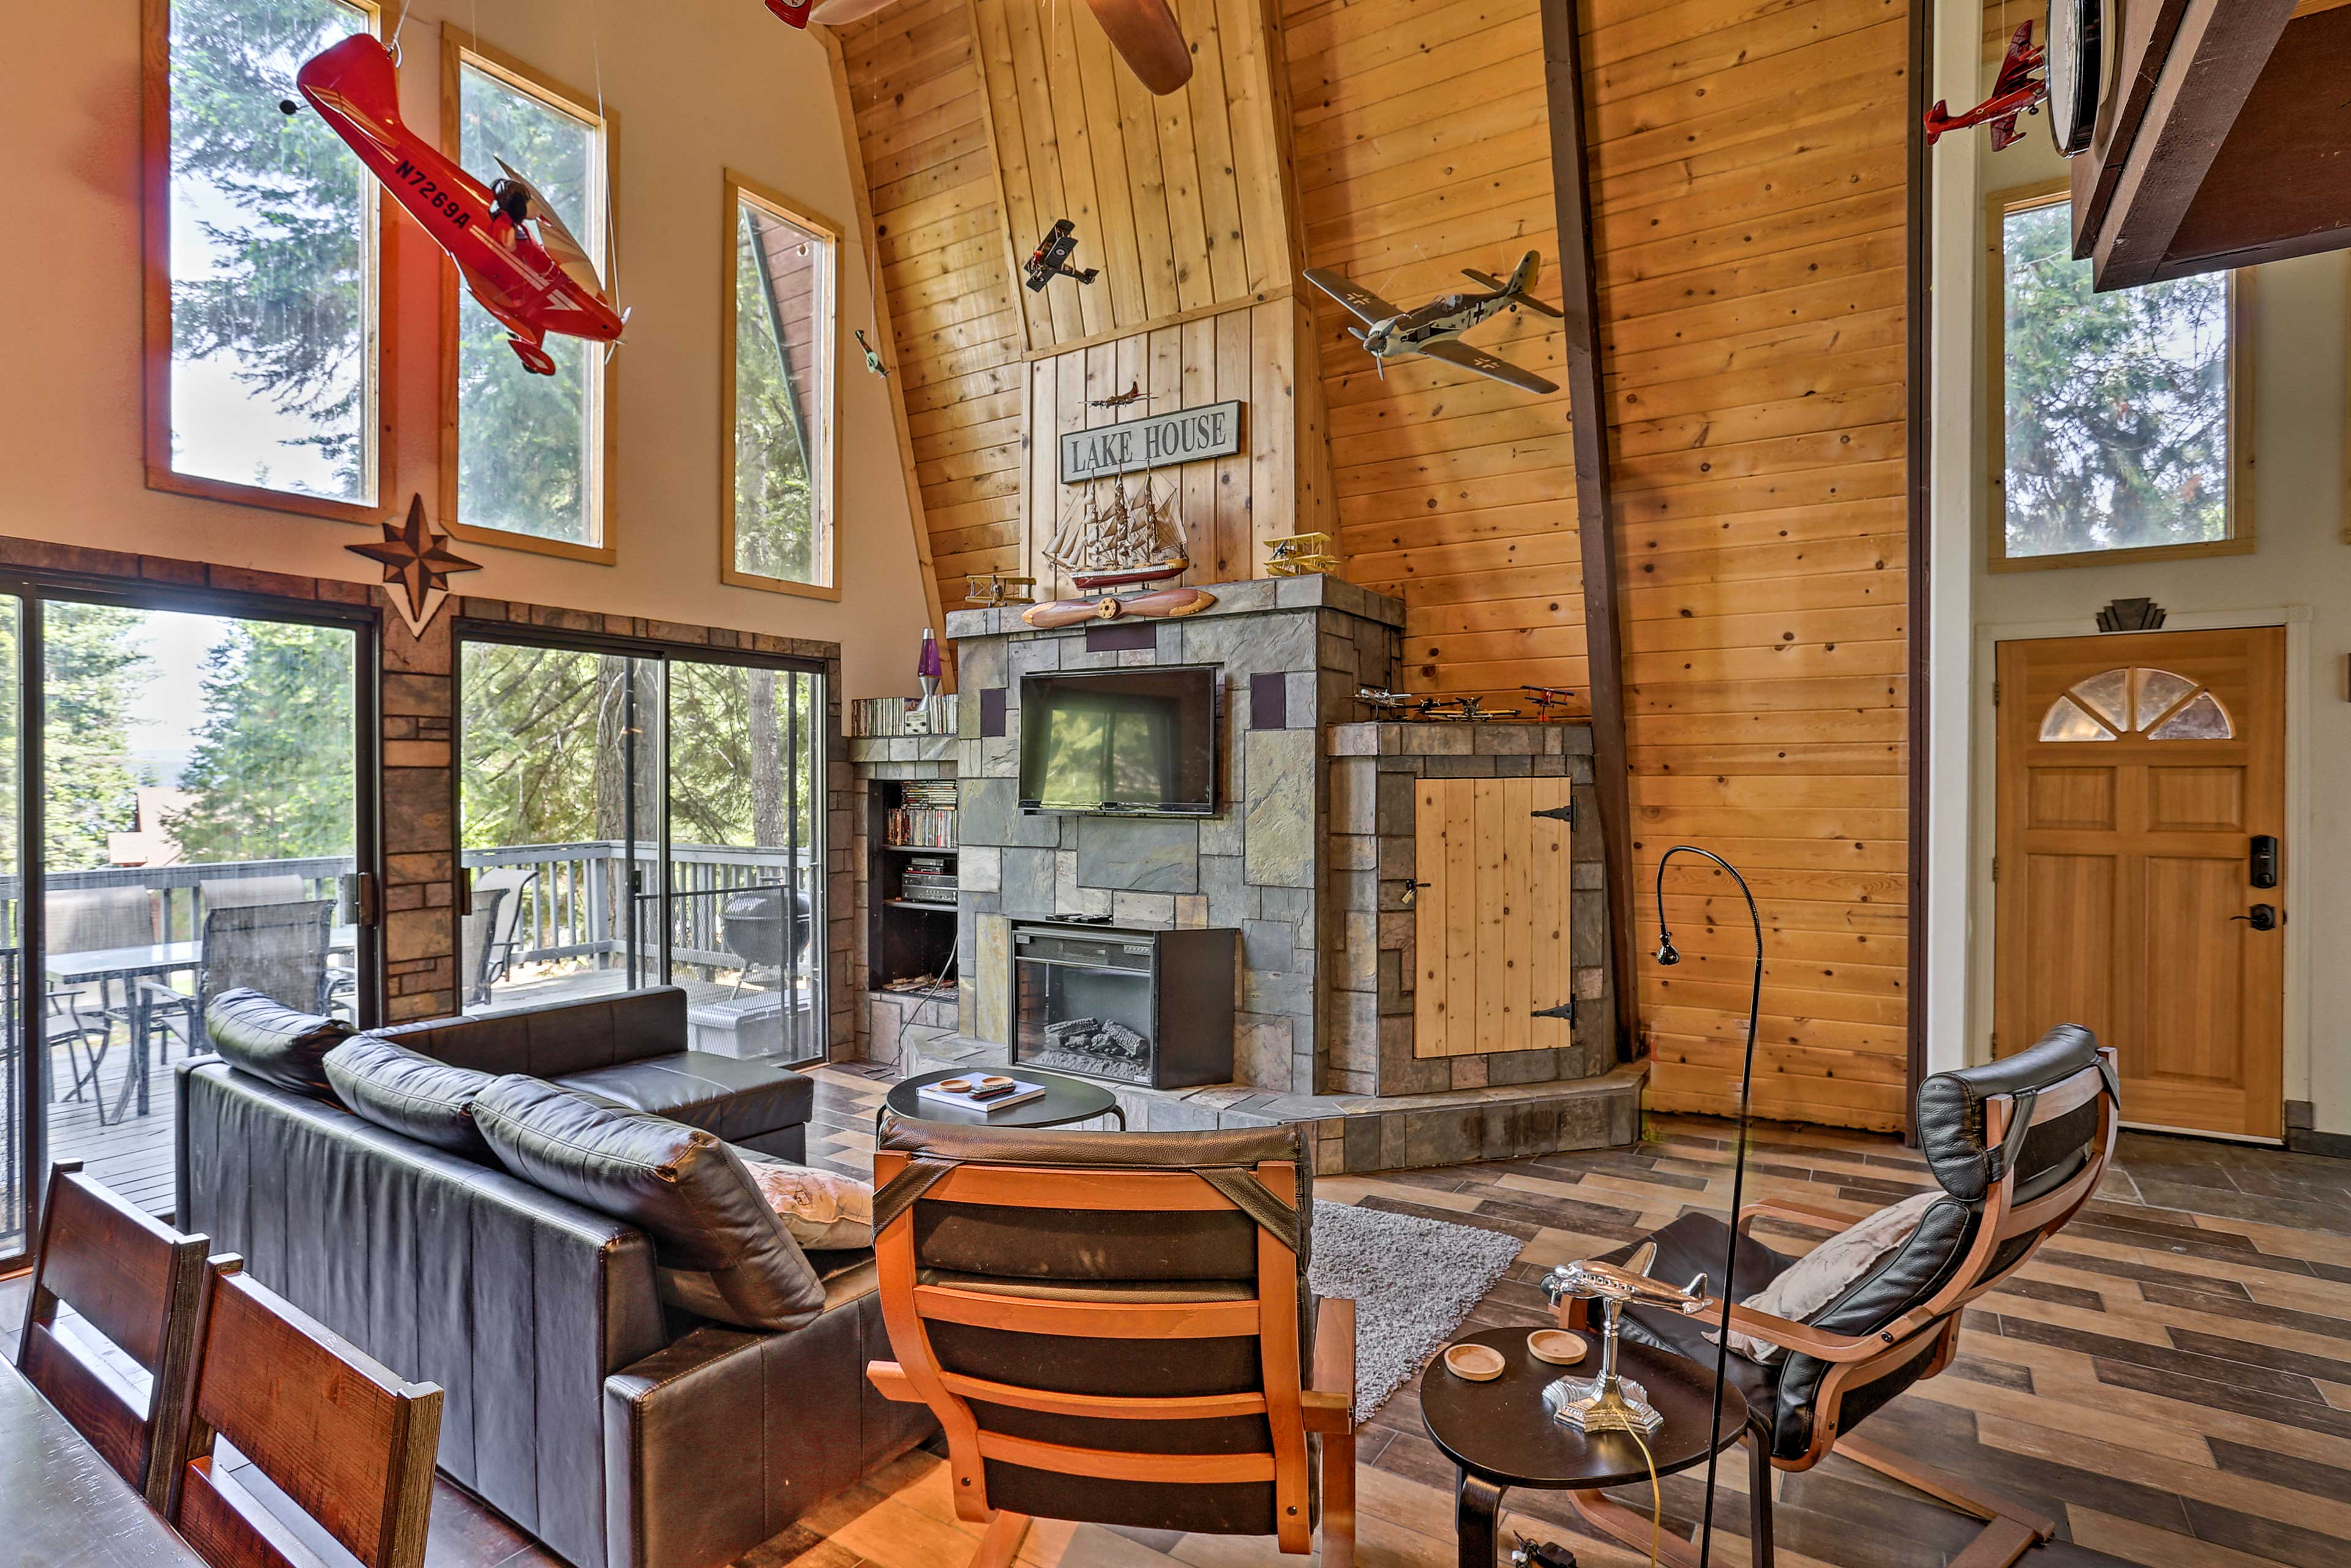 Take some time with the family to unwind in this Lake Almanor cabin.